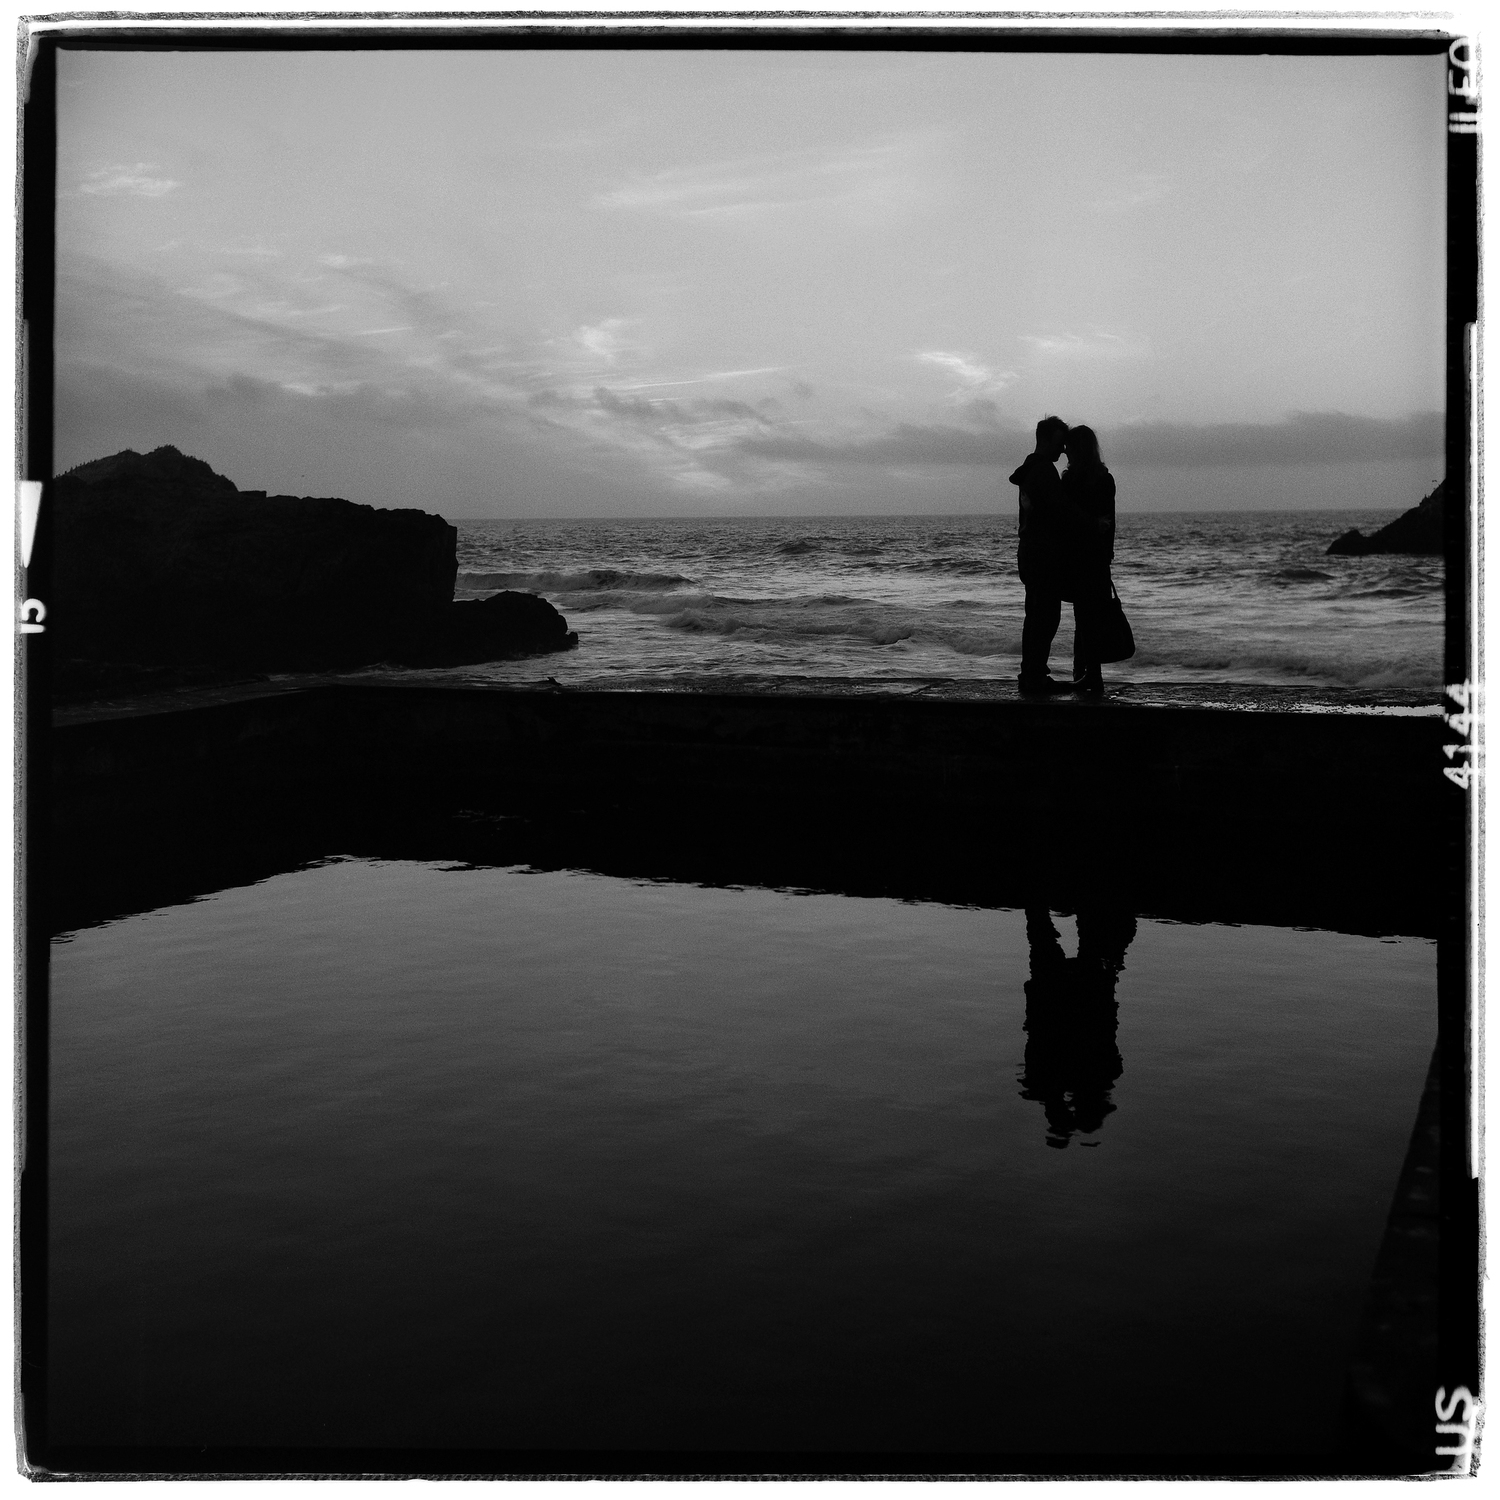 Sunset embrace - Sutro Baths, San Francisco, CA